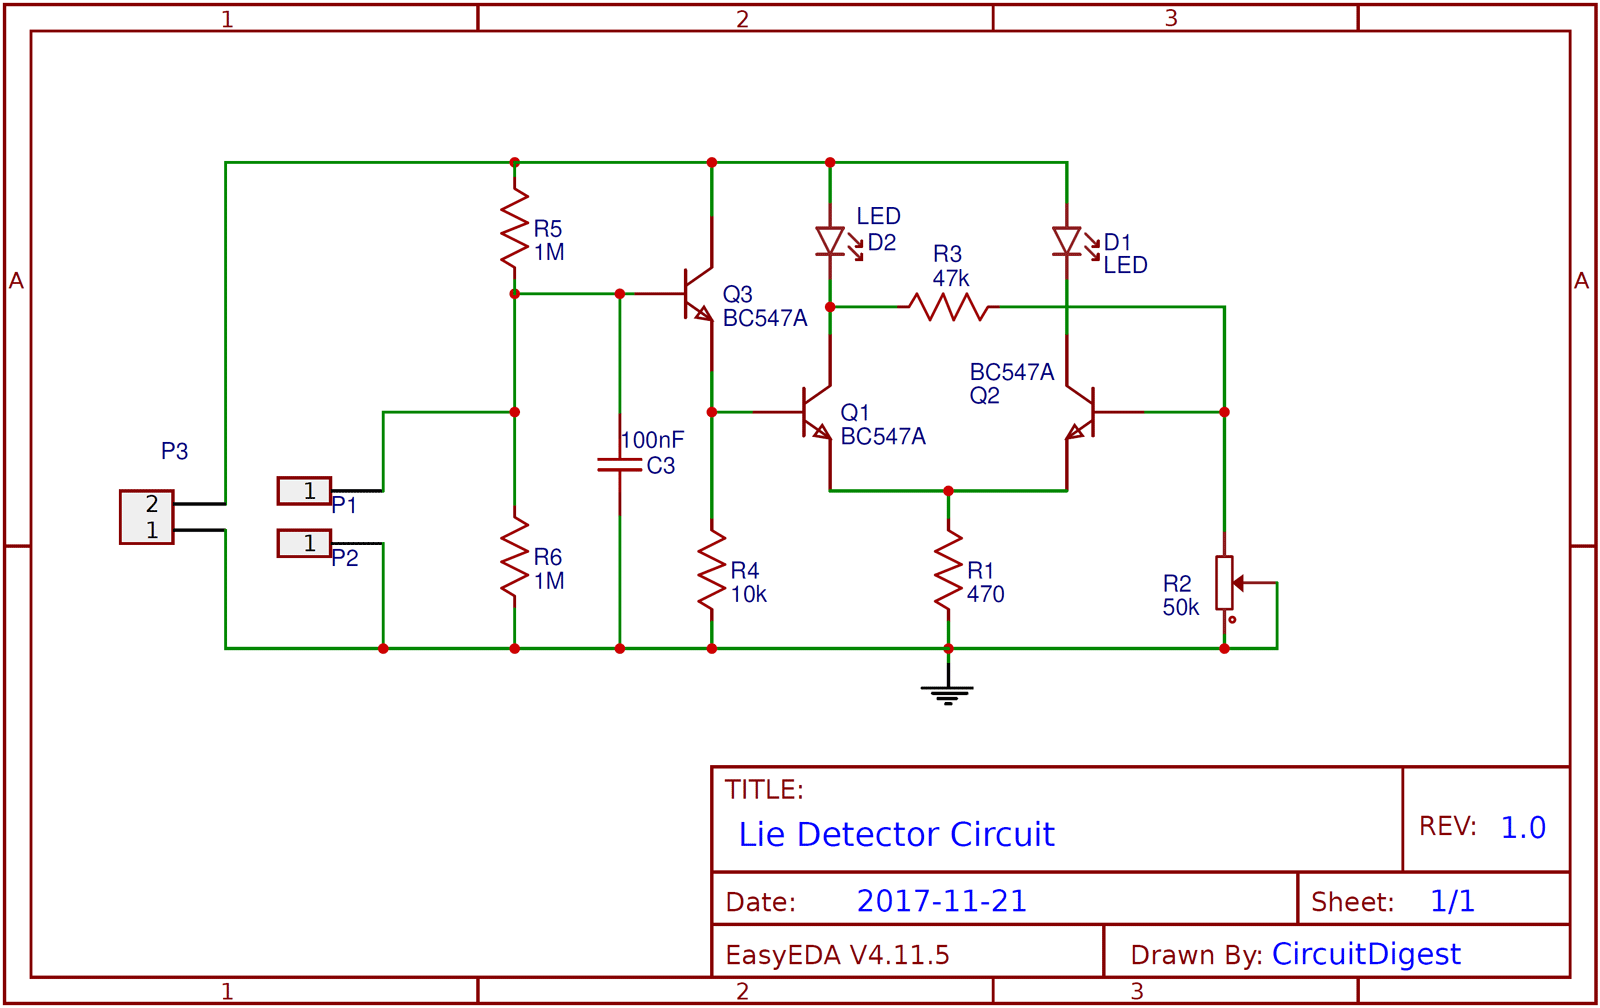 Simple Lie Detector Circuit Diagram Electronic Diagrams For Line Follower Robot On Main Electric Panel Wiring